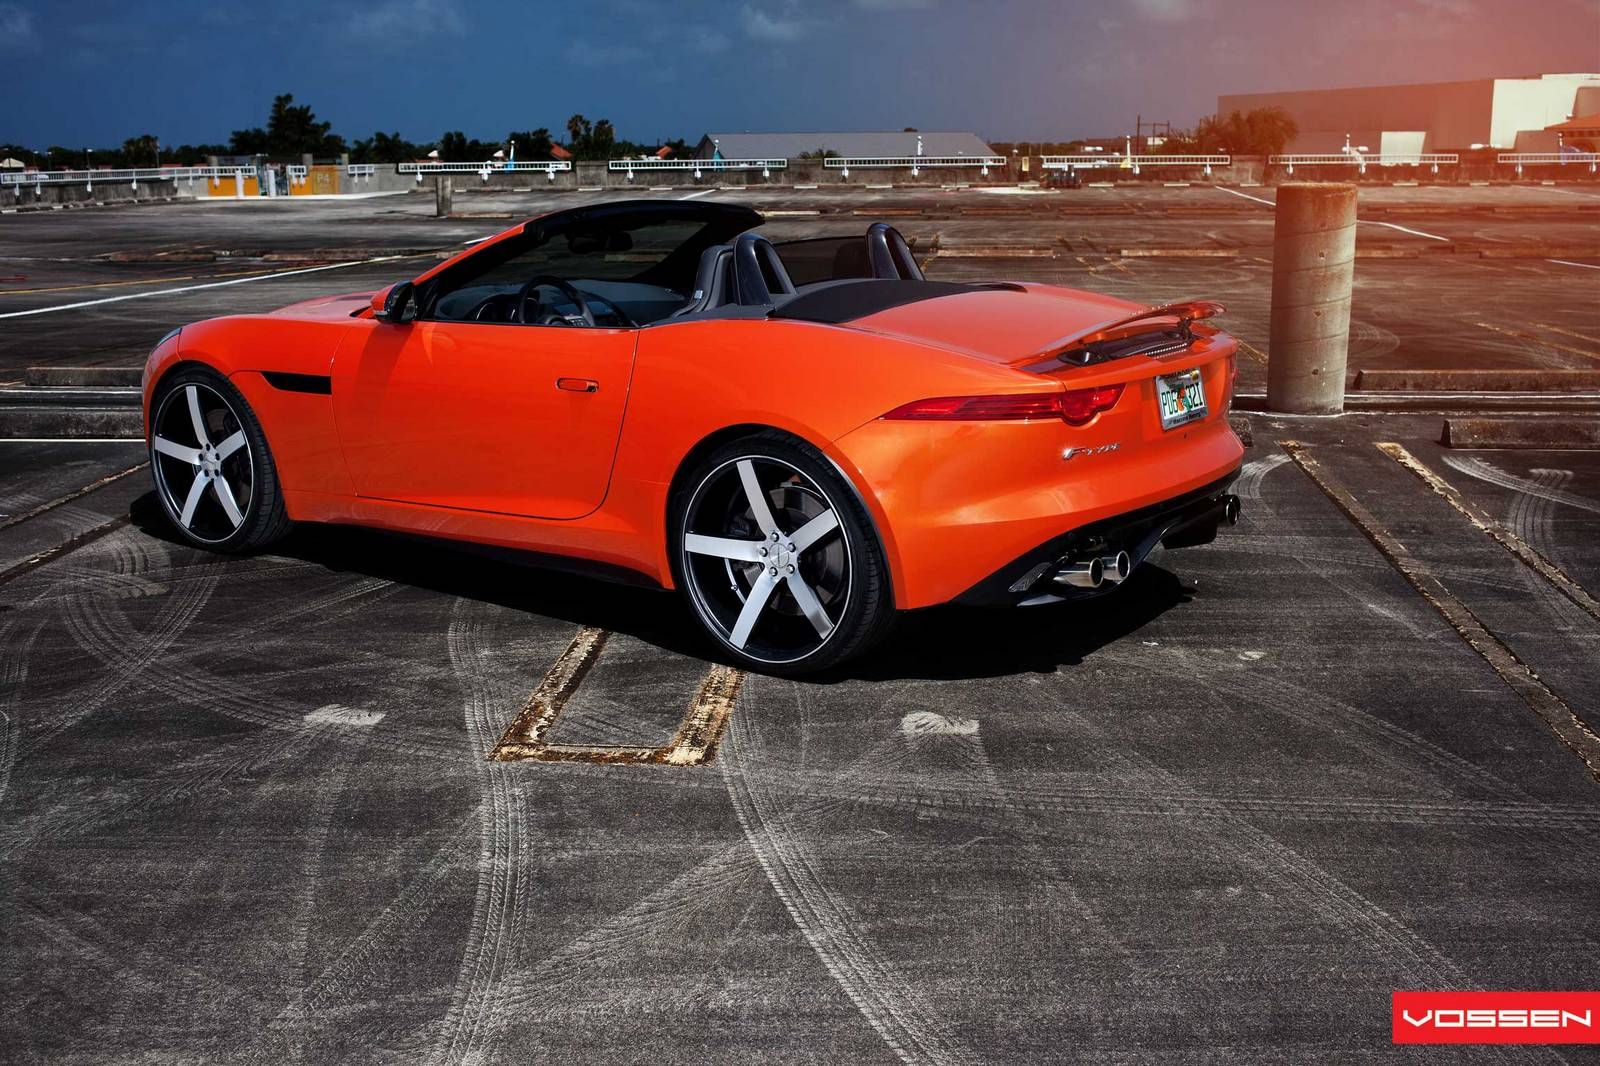 Davide458italia  Jaguar F Type V8 S on Vossen Wheels